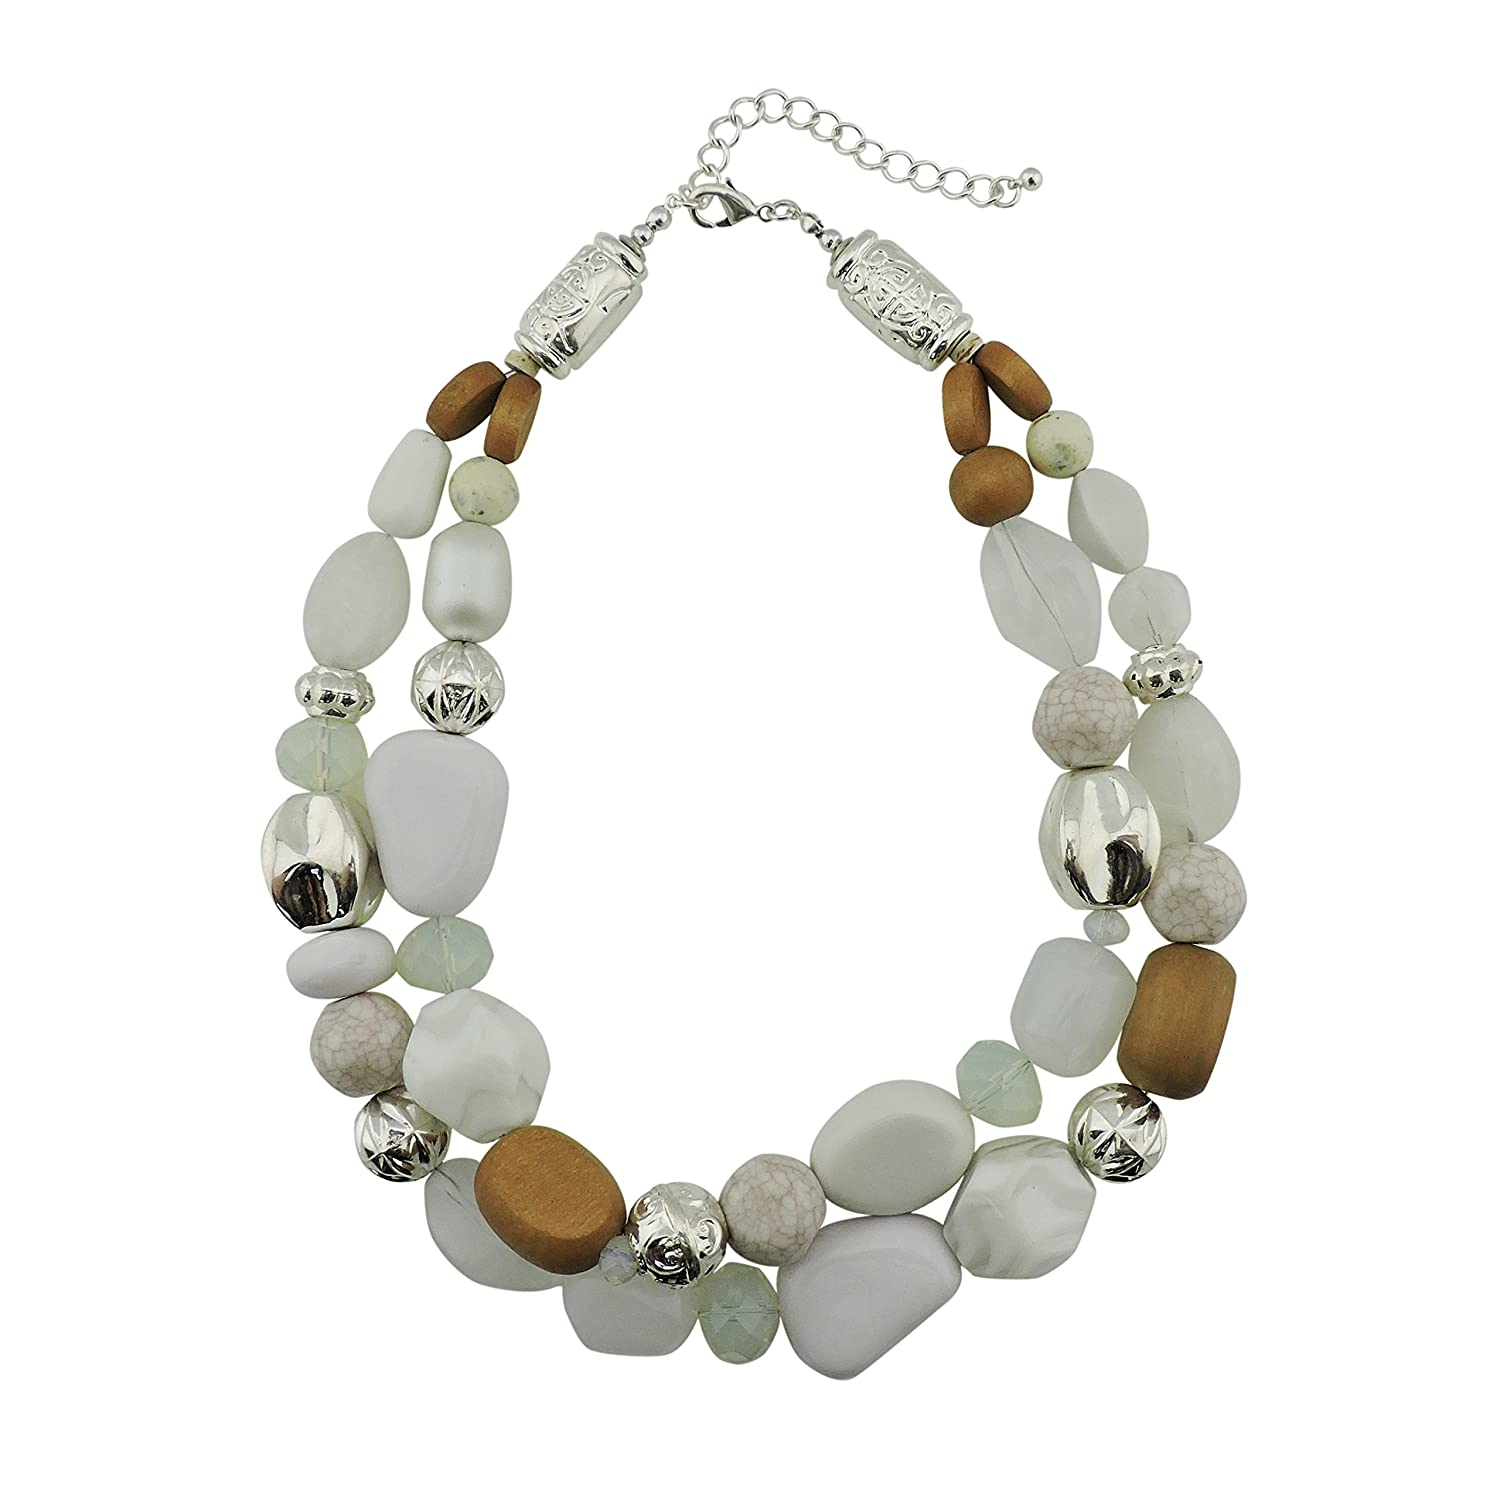 Bocar 2 Layer Statement Chunky Beaded Fashion Necklace for Women Gifts bocarjewelry NK-10384